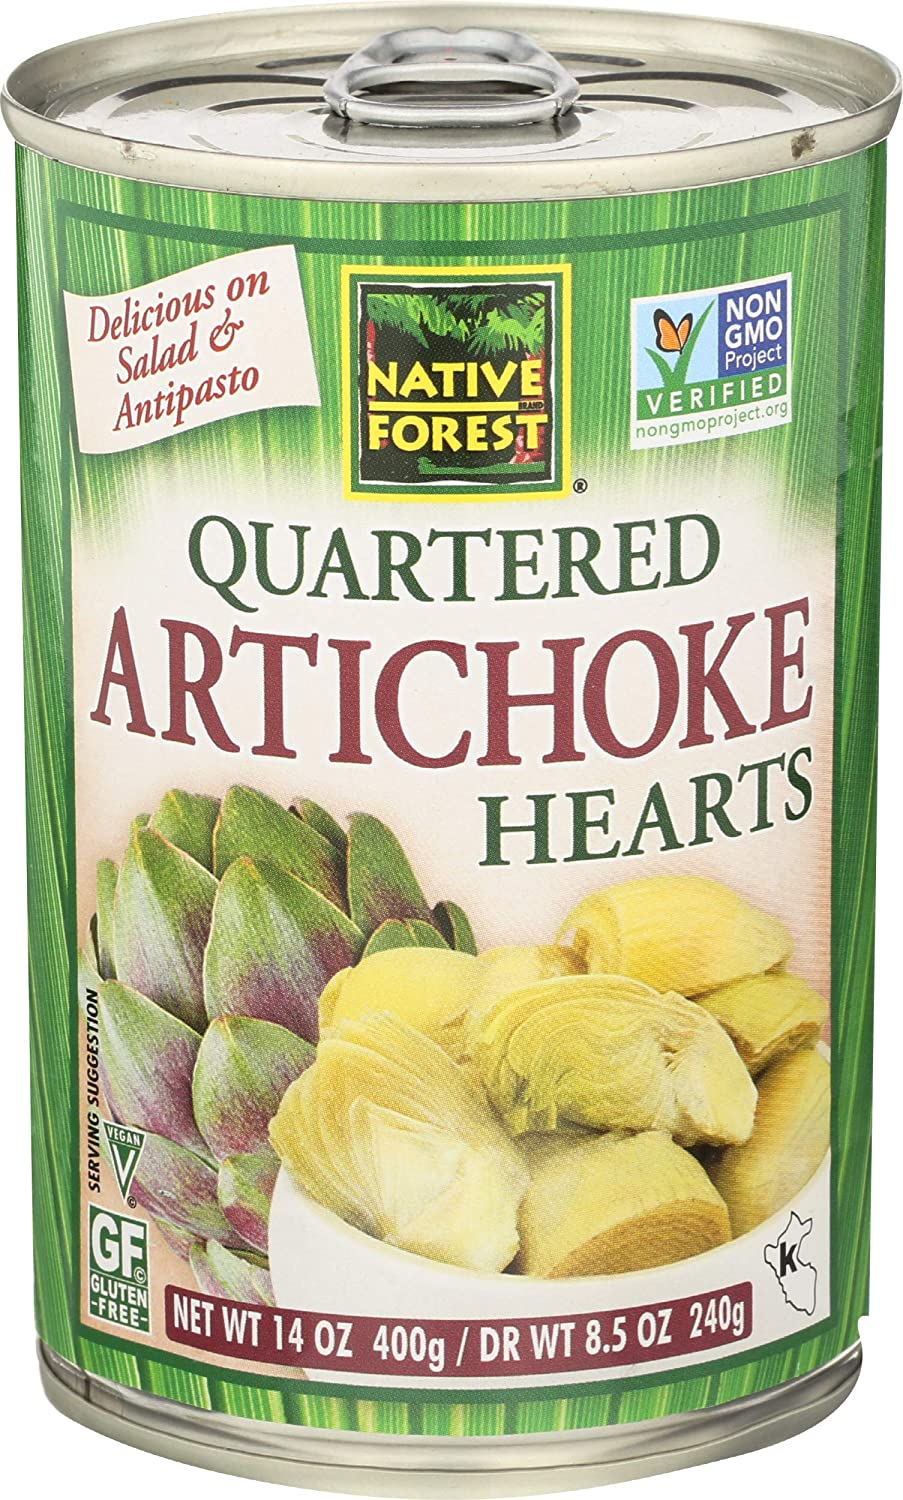 NATIVE FOREST Outlet sale feature Quartered Artichoke Year-end gift OZ 14 Hearts